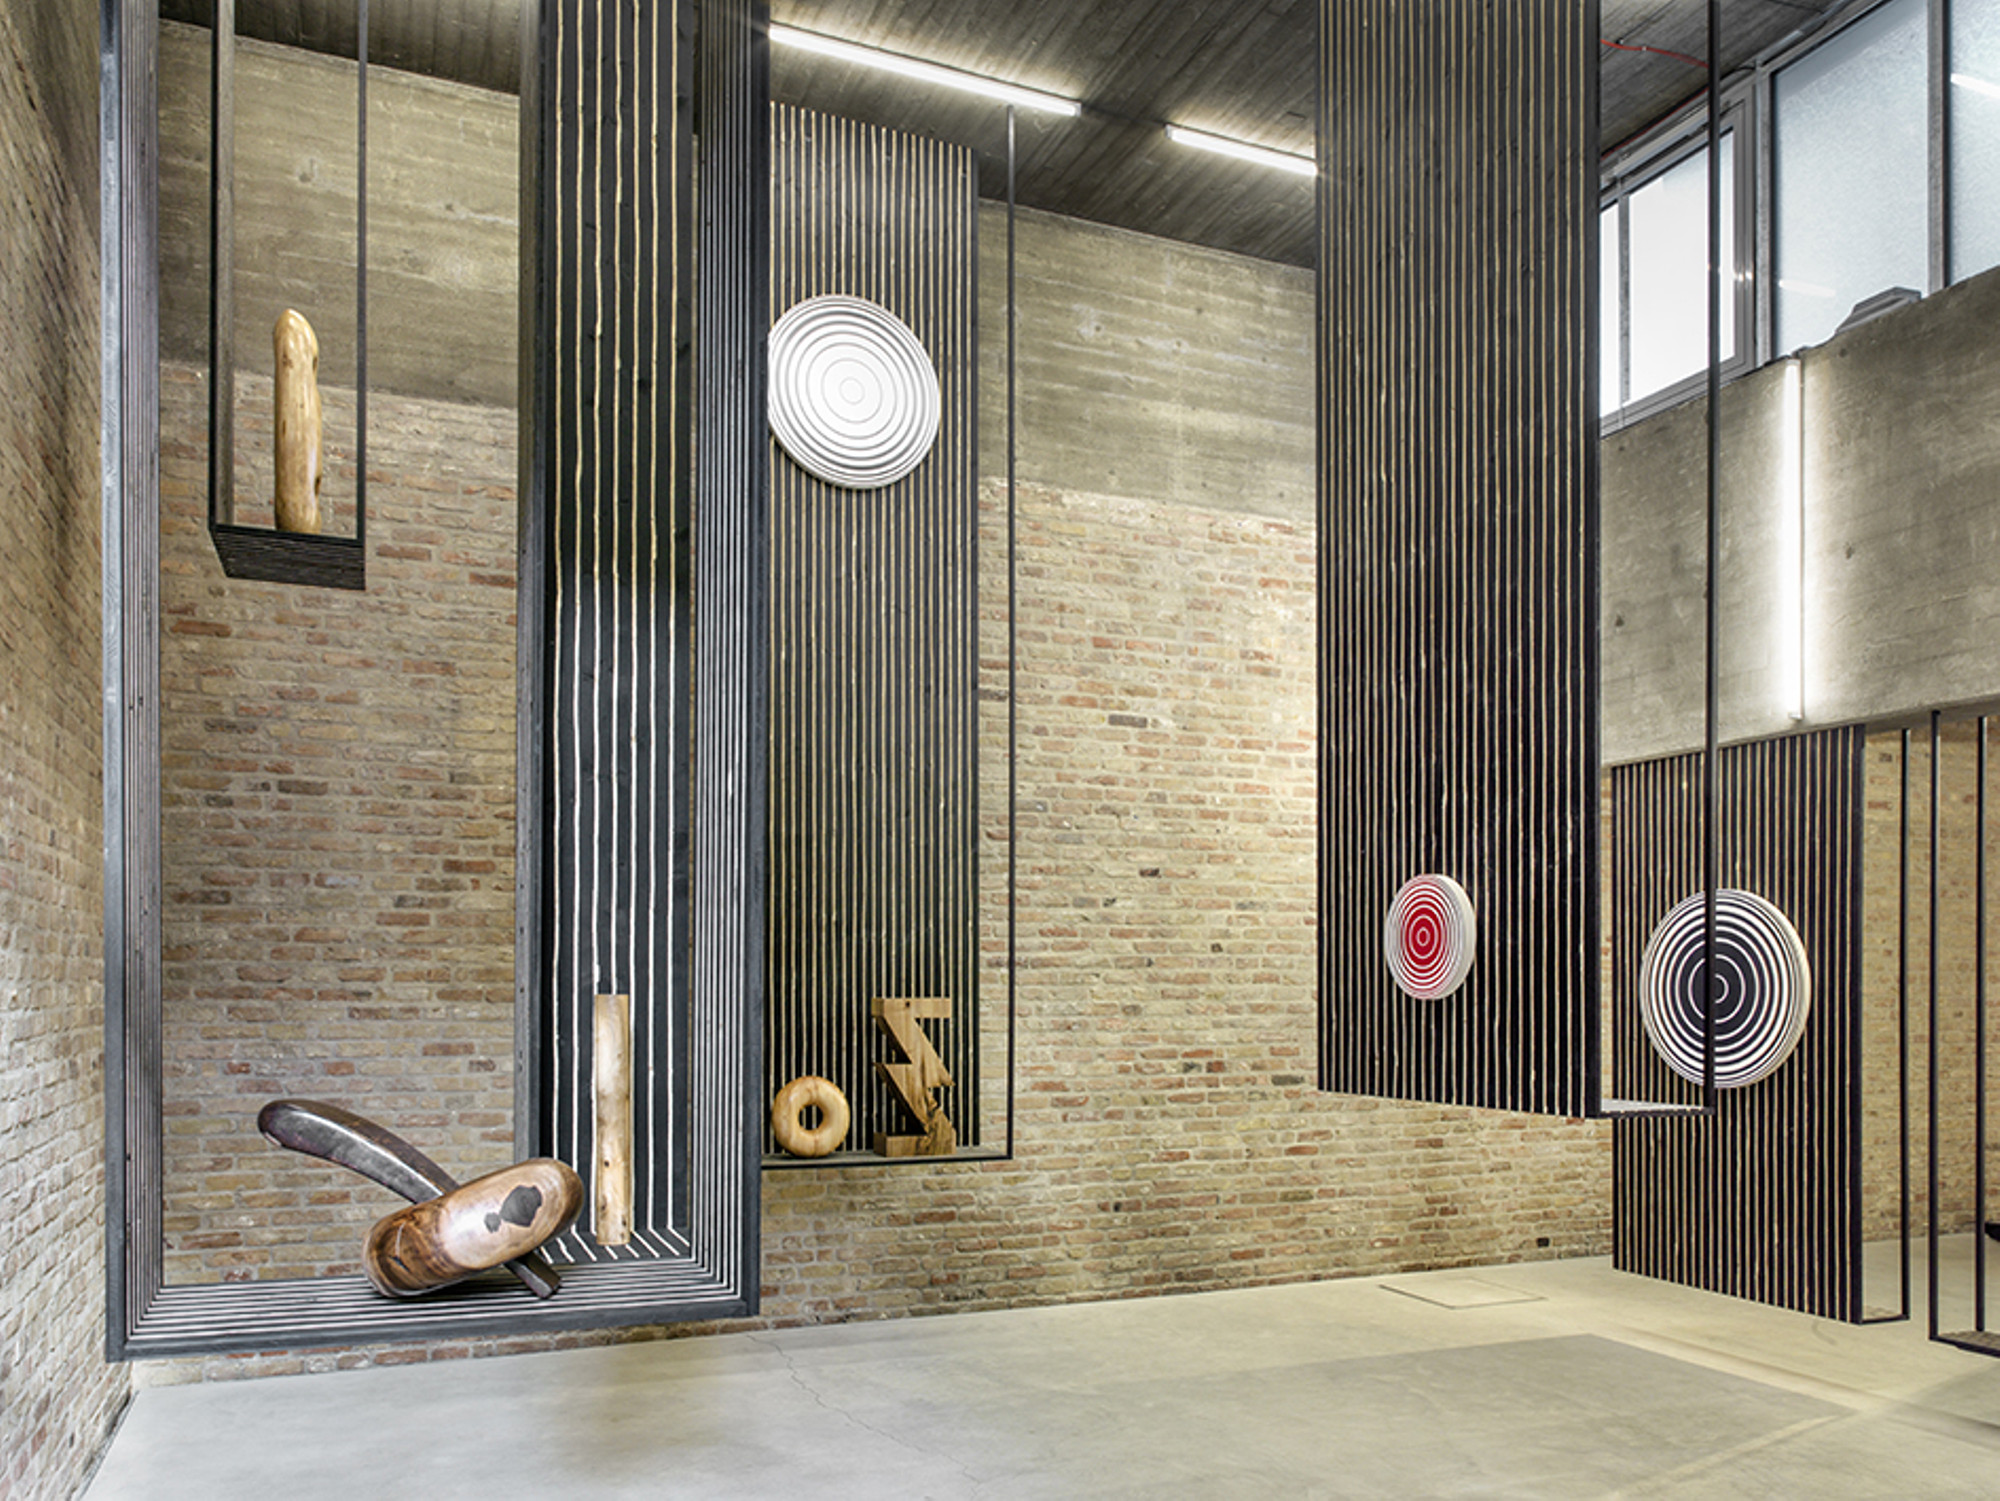 Museum Of Arts And Design Hours : Works claudia comte könig galerie